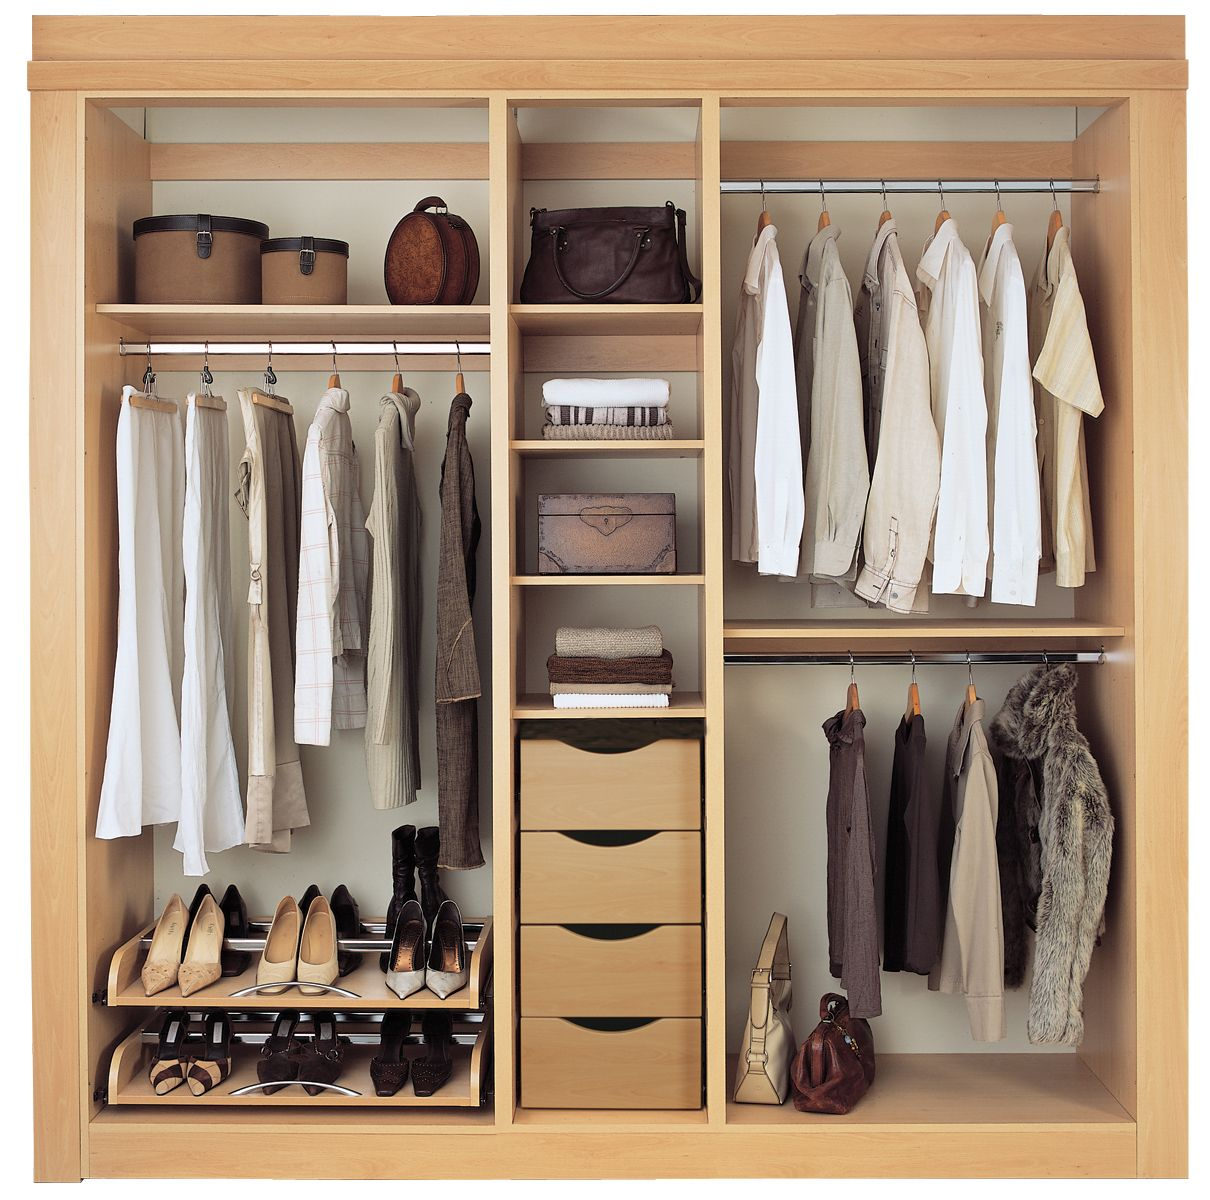 Designer Wardrobes For Interior Inspiration In Amersham: Drawers Design Is Different And Unique. Built In Storage